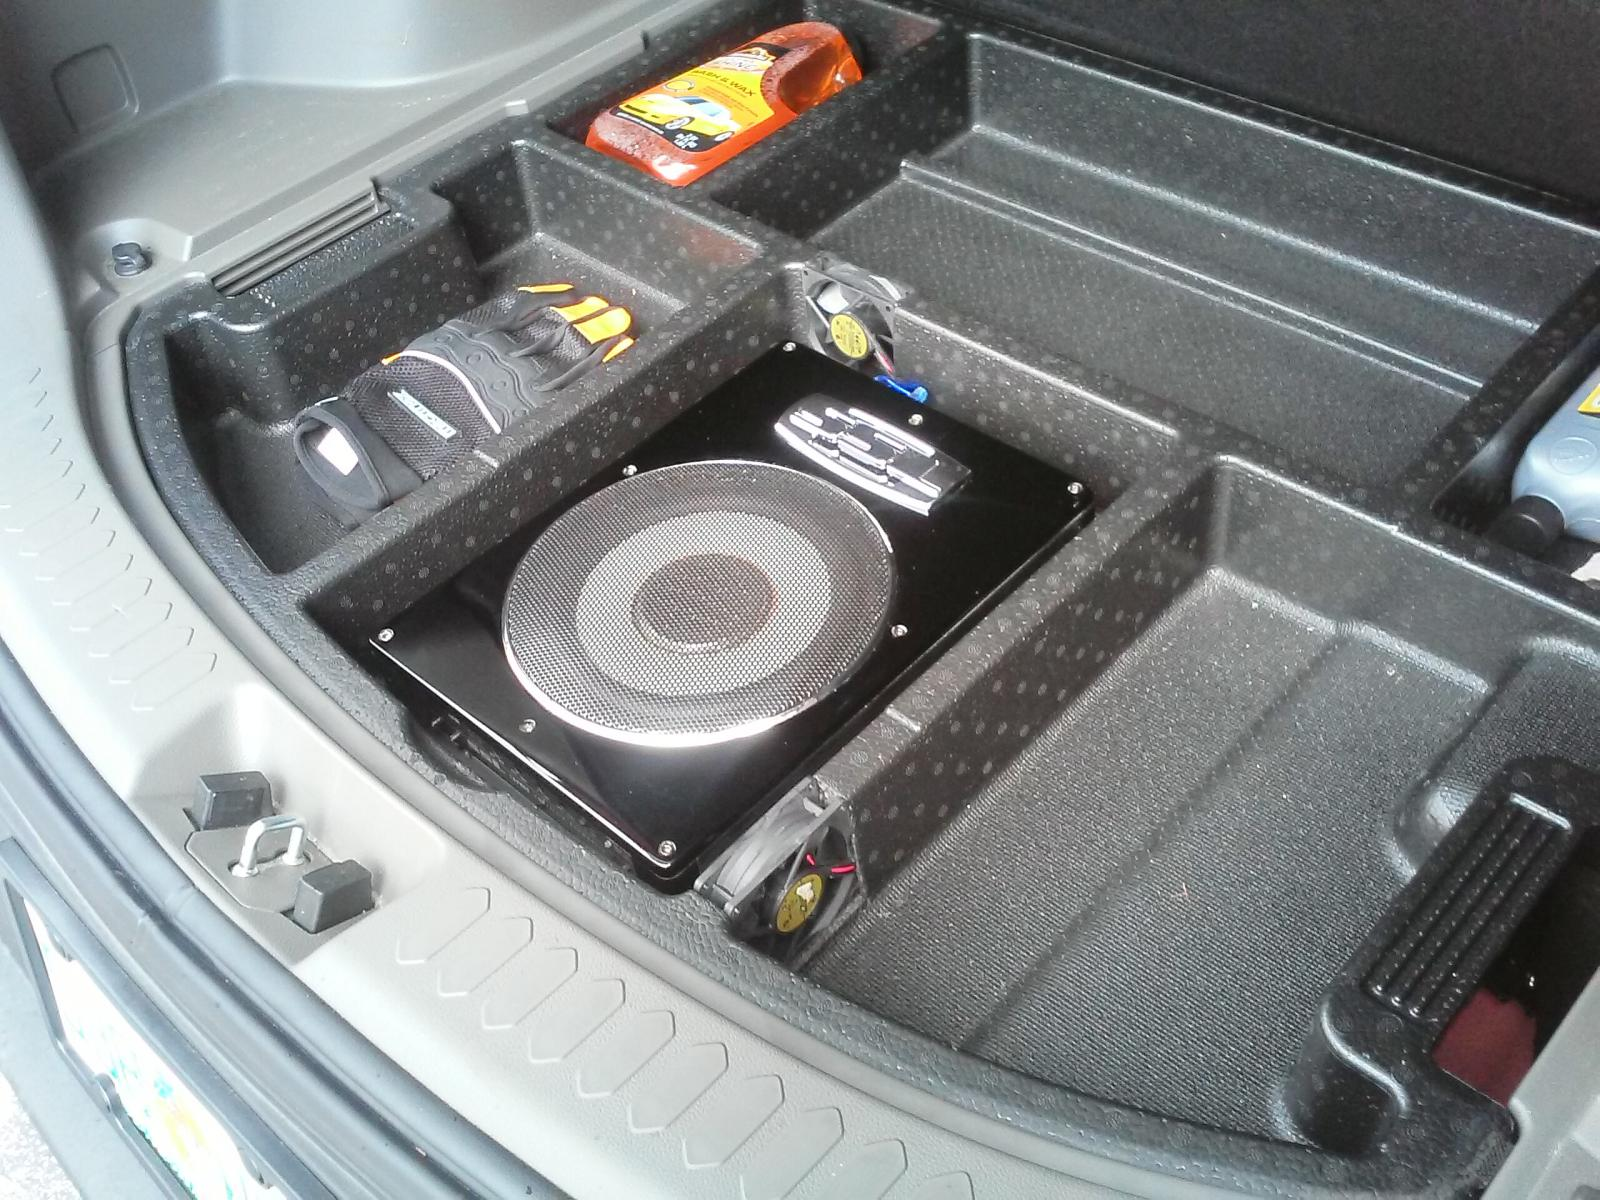 After Market Compact Sub Install In 2011 Sportage Kia Forum